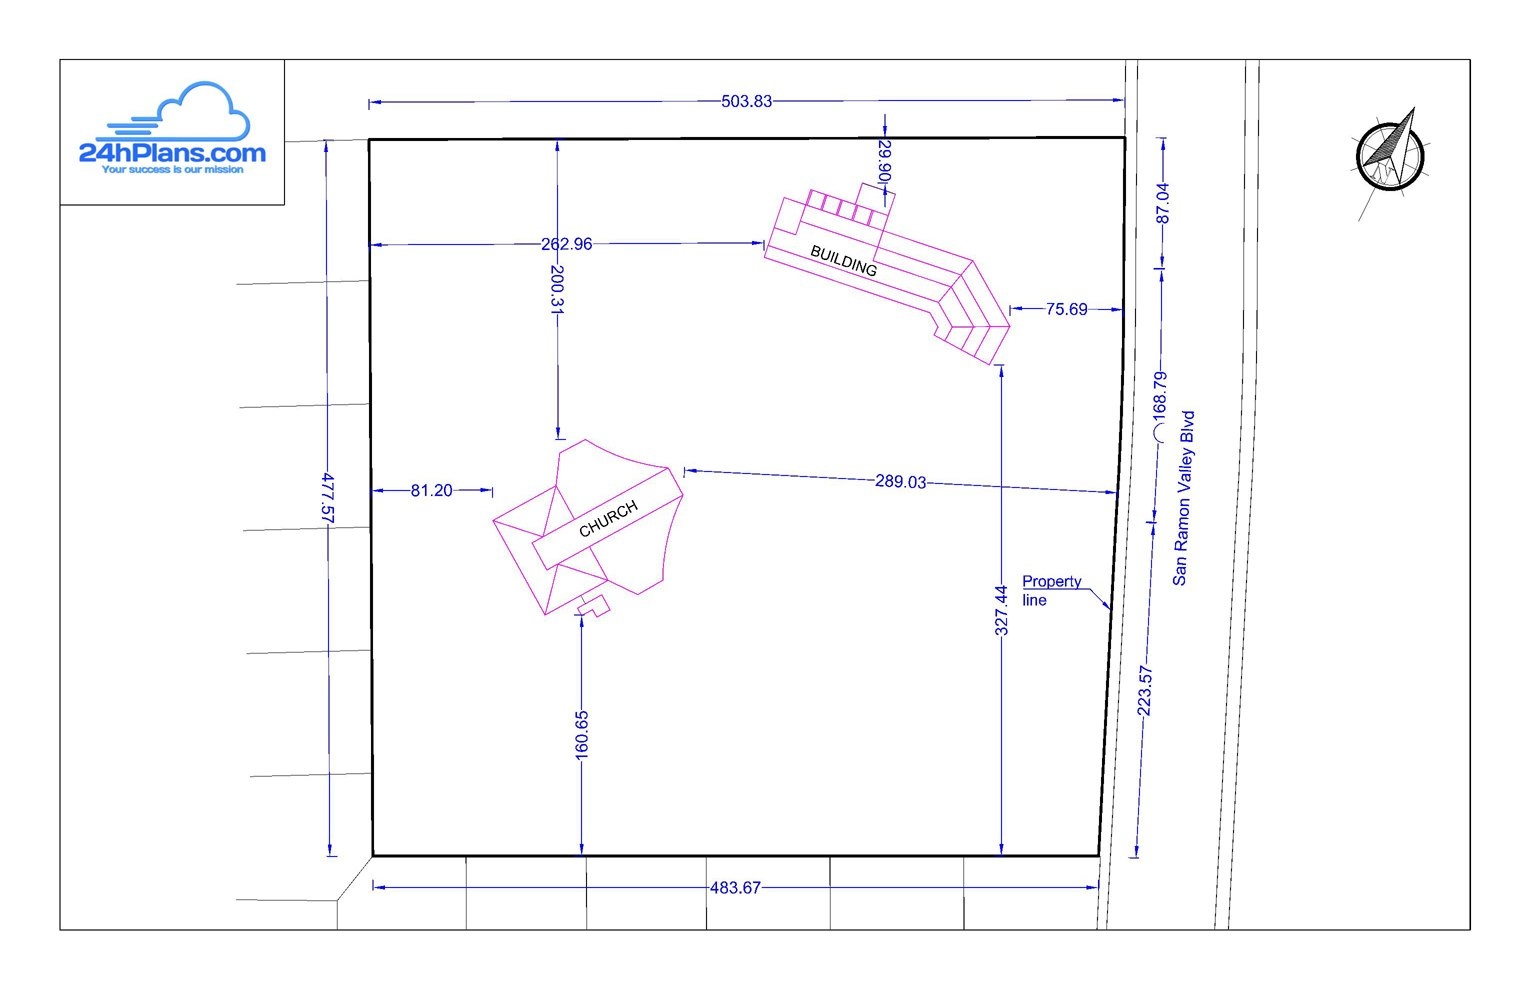 Simple design 24h site plans for building permits site for Site plan drawing online